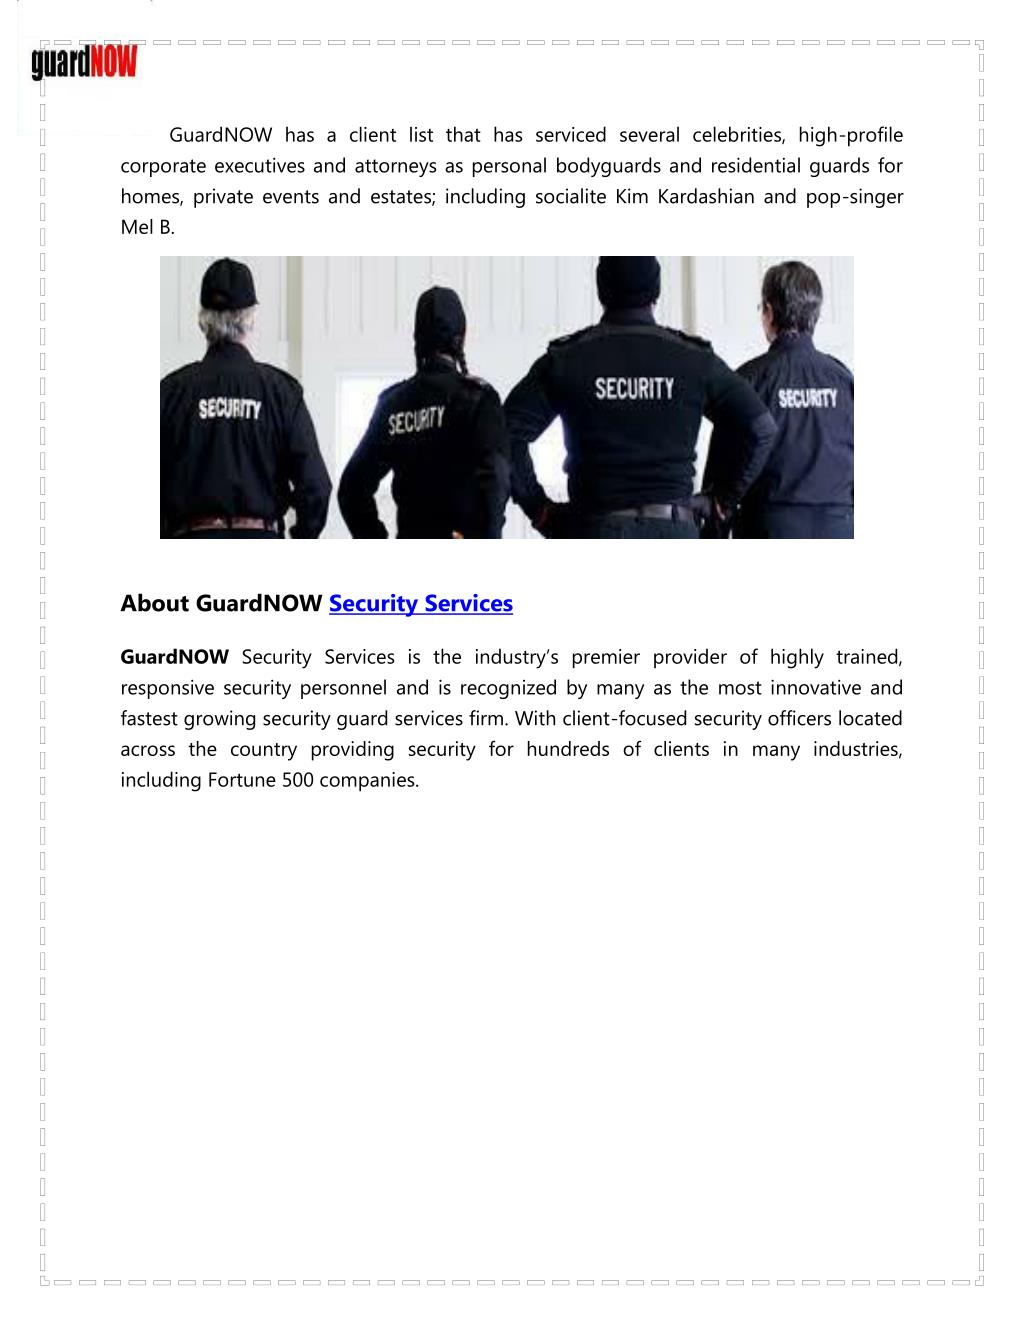 PPT - Security Services | Security Services Company